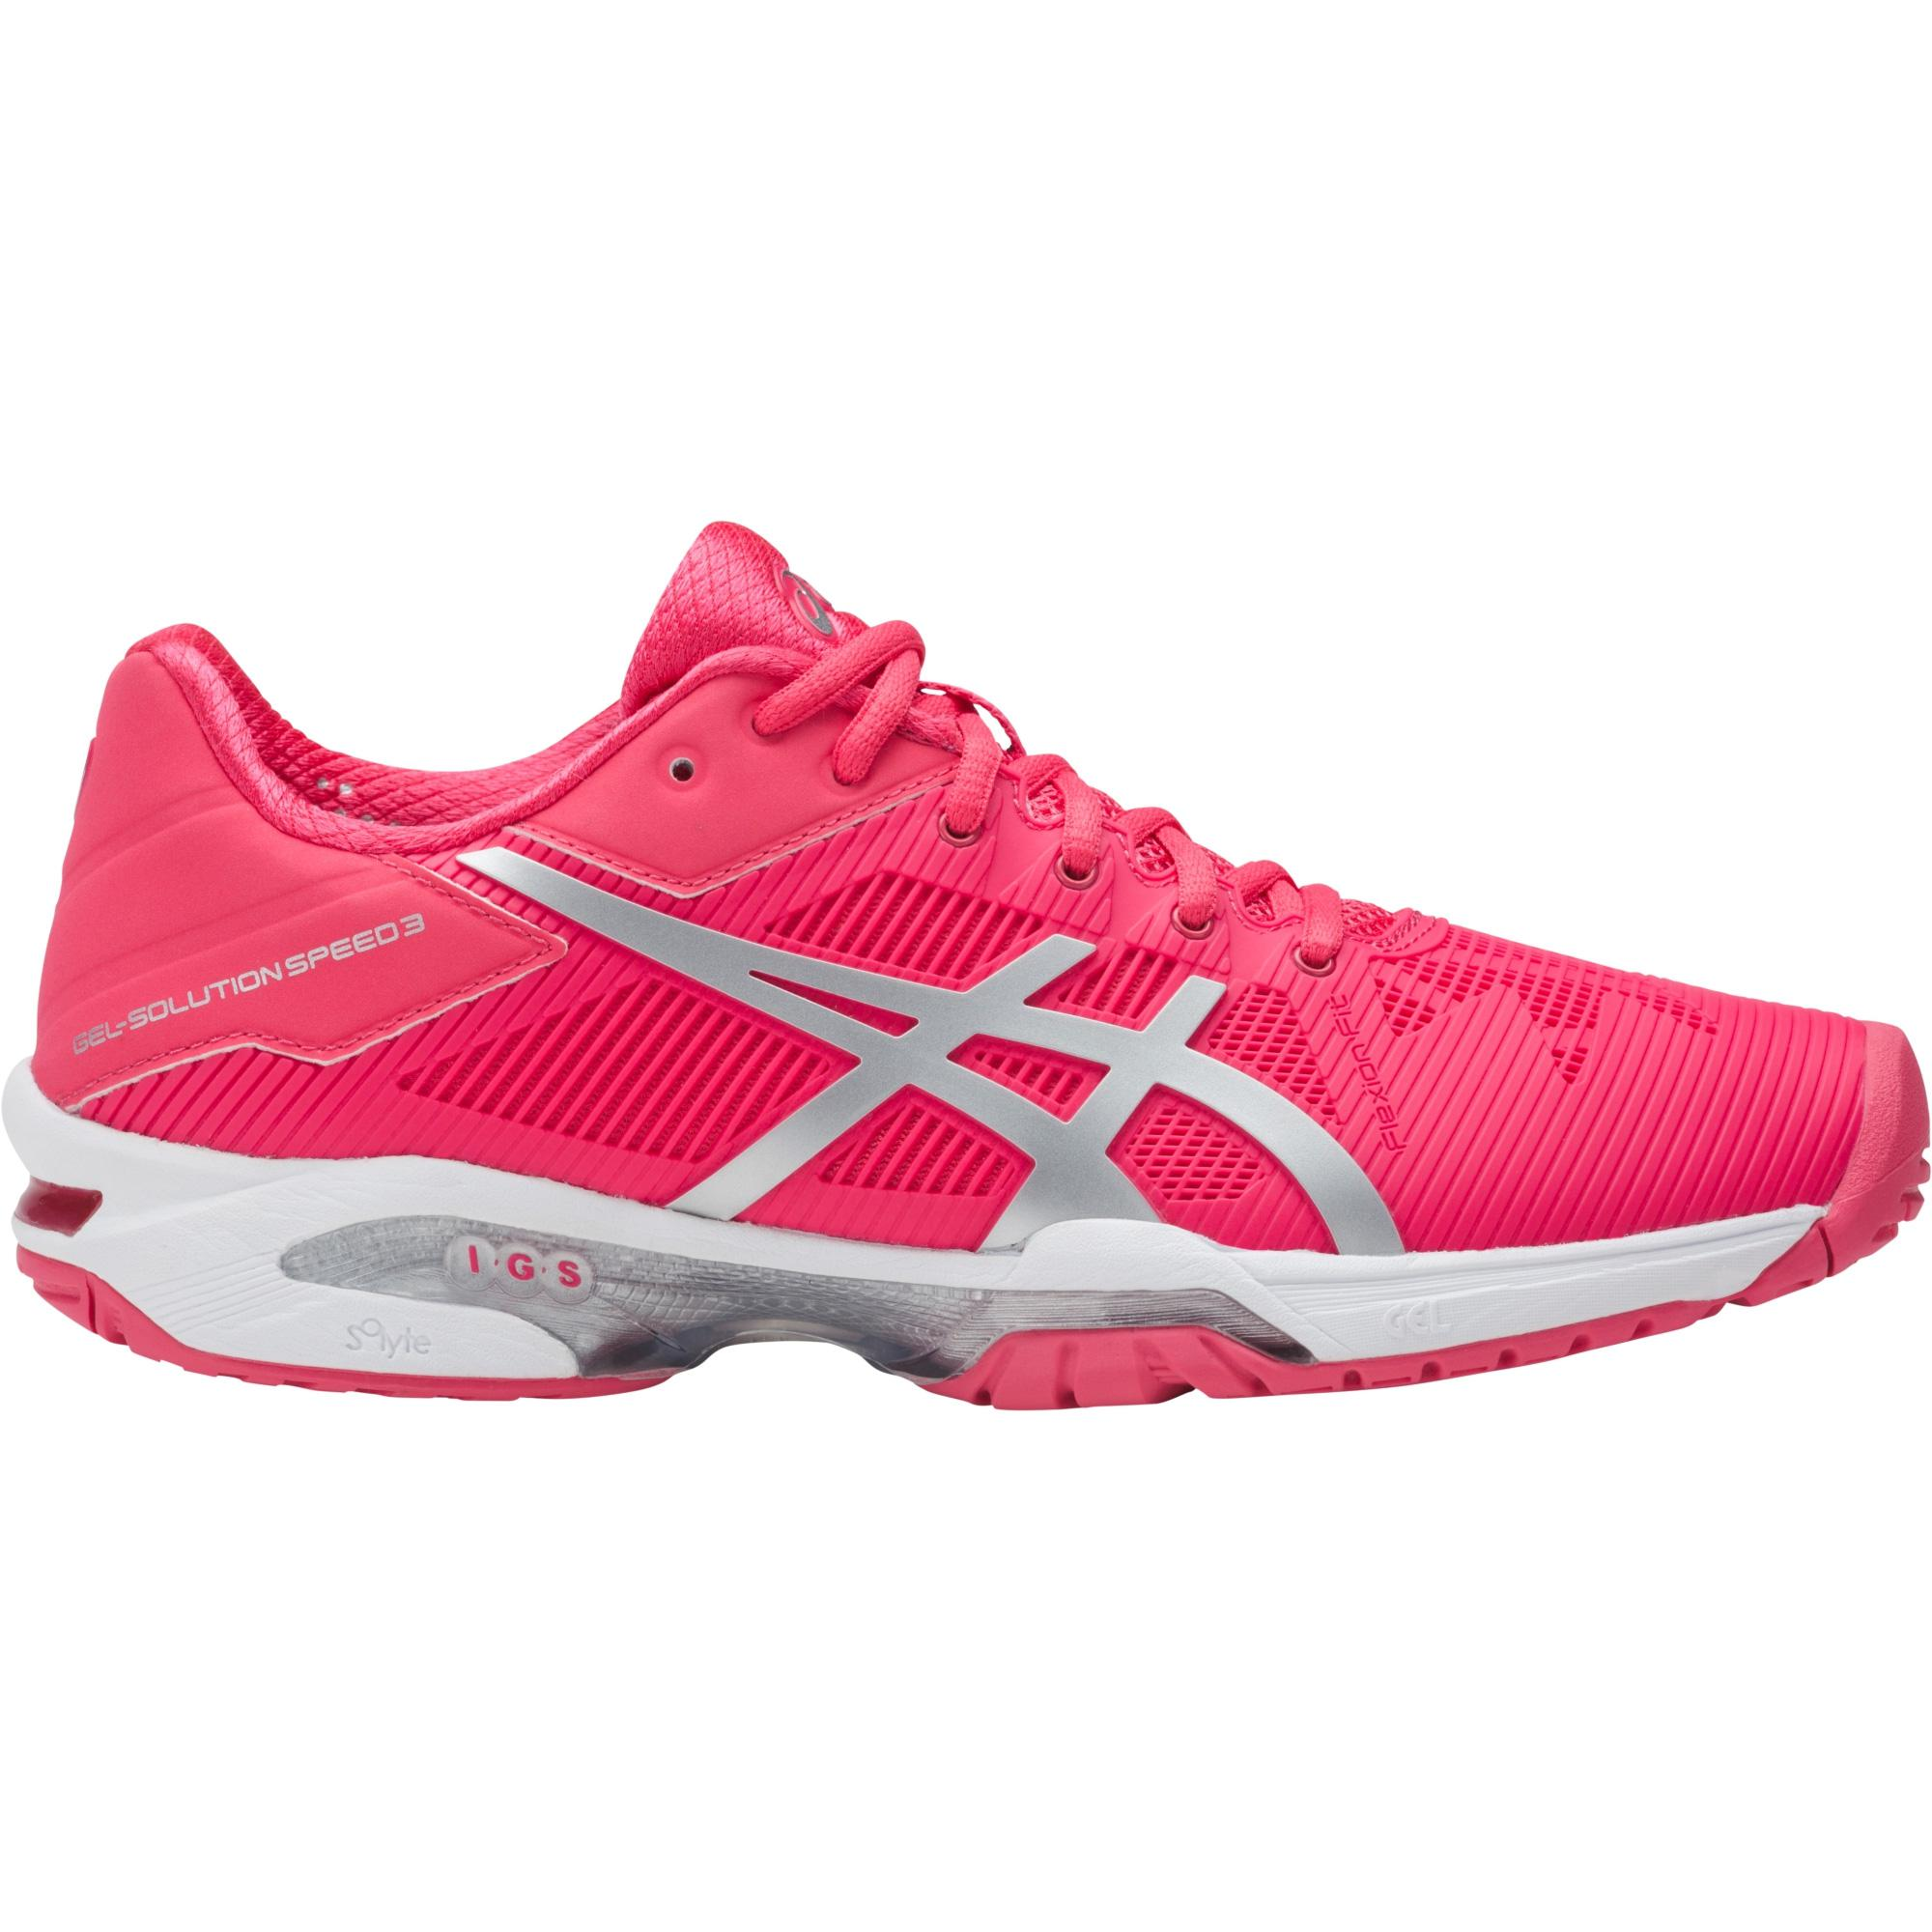 asics womens gelsolution speed 3 tennis shoes rouge red